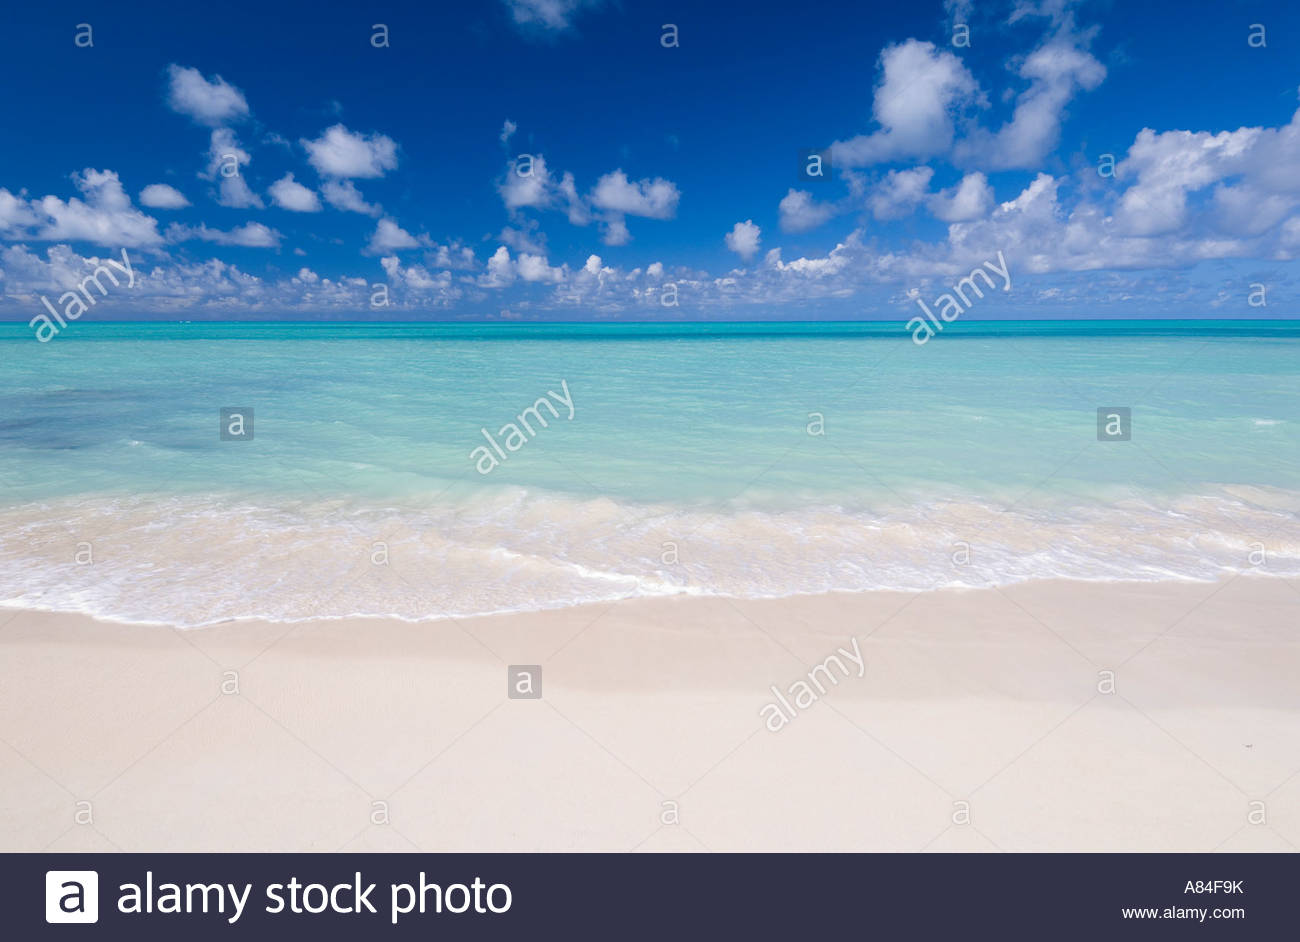 A classic view of turquoise seas and white sand beach, at Dickenson Bay, Antigua, Leeward Islands, Caribbean - Stock Image